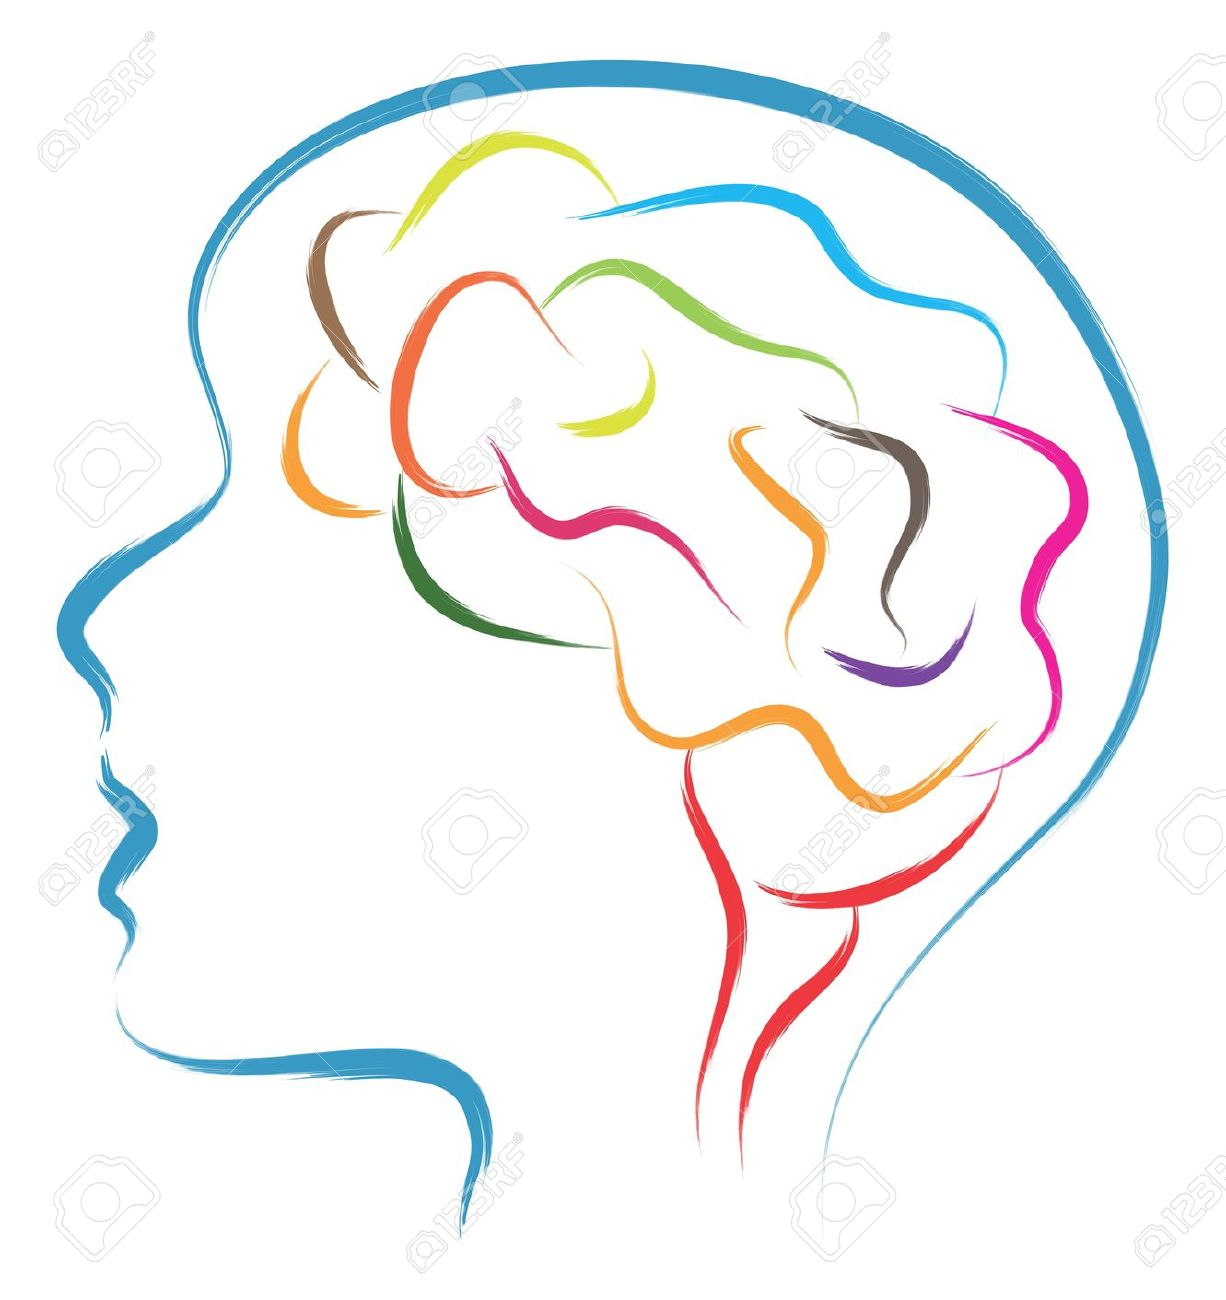 Head In Mind Clipart #1.